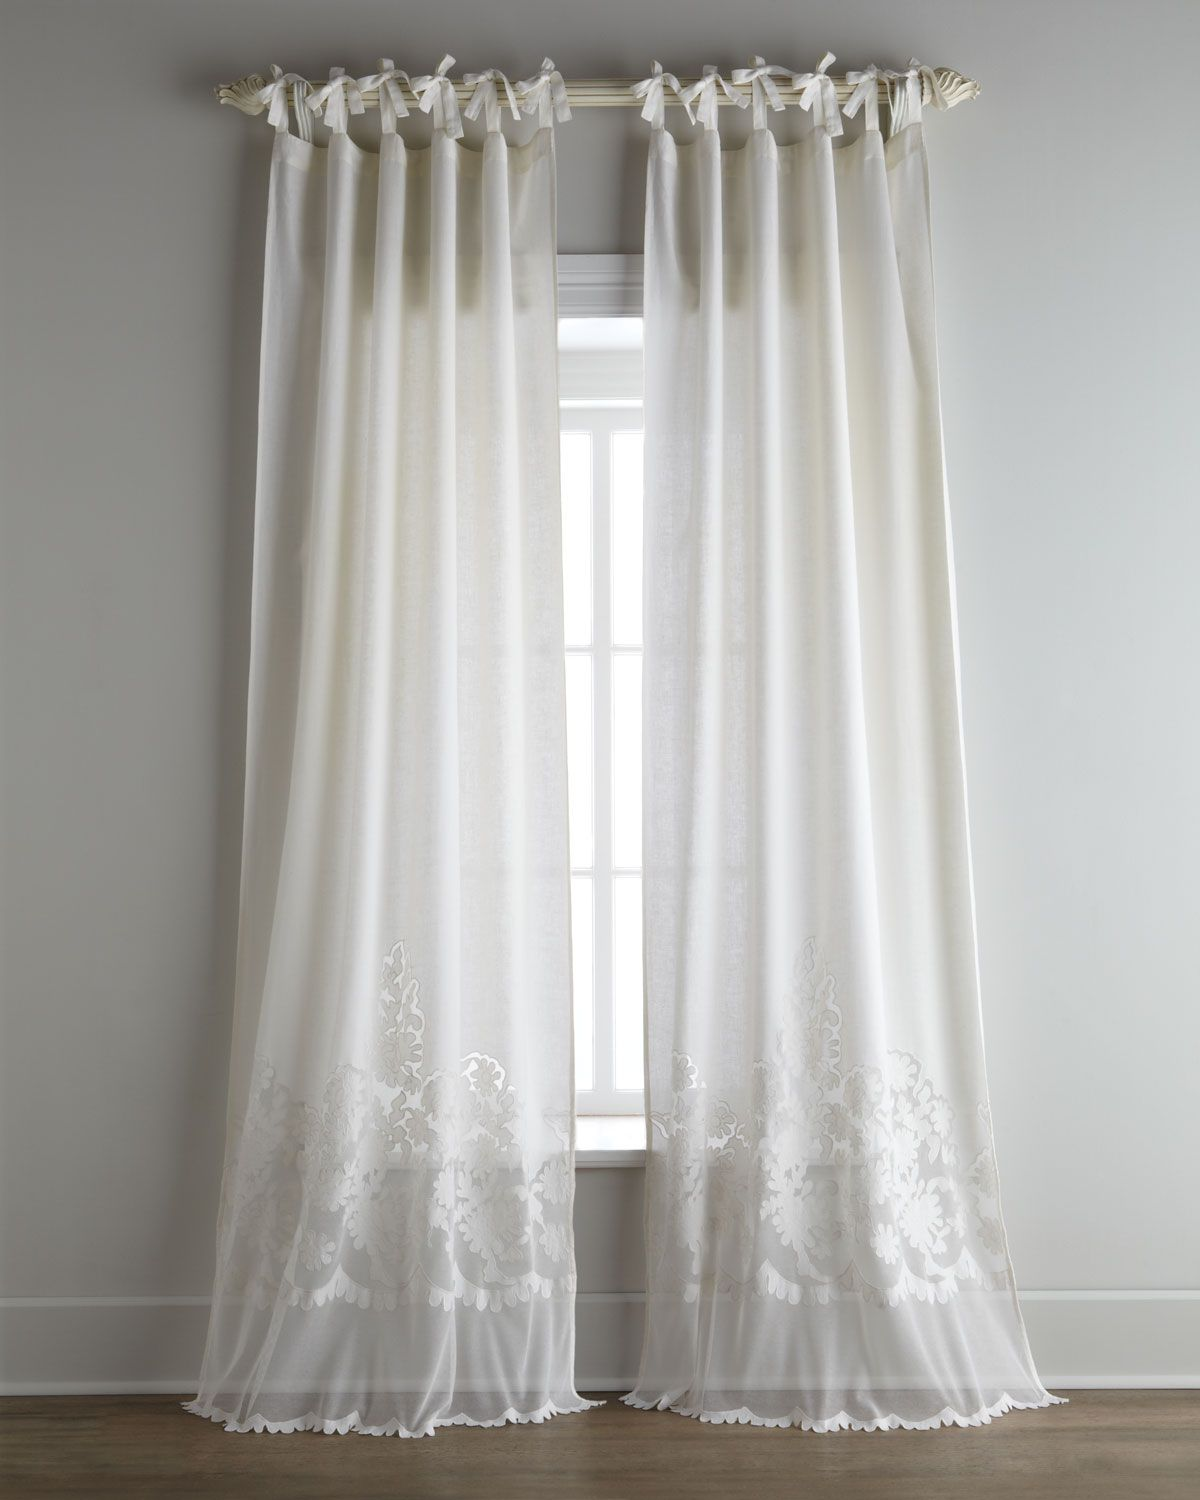 Each caprice tie top curtain pearl ivory pom pom at for Home drapes and curtains